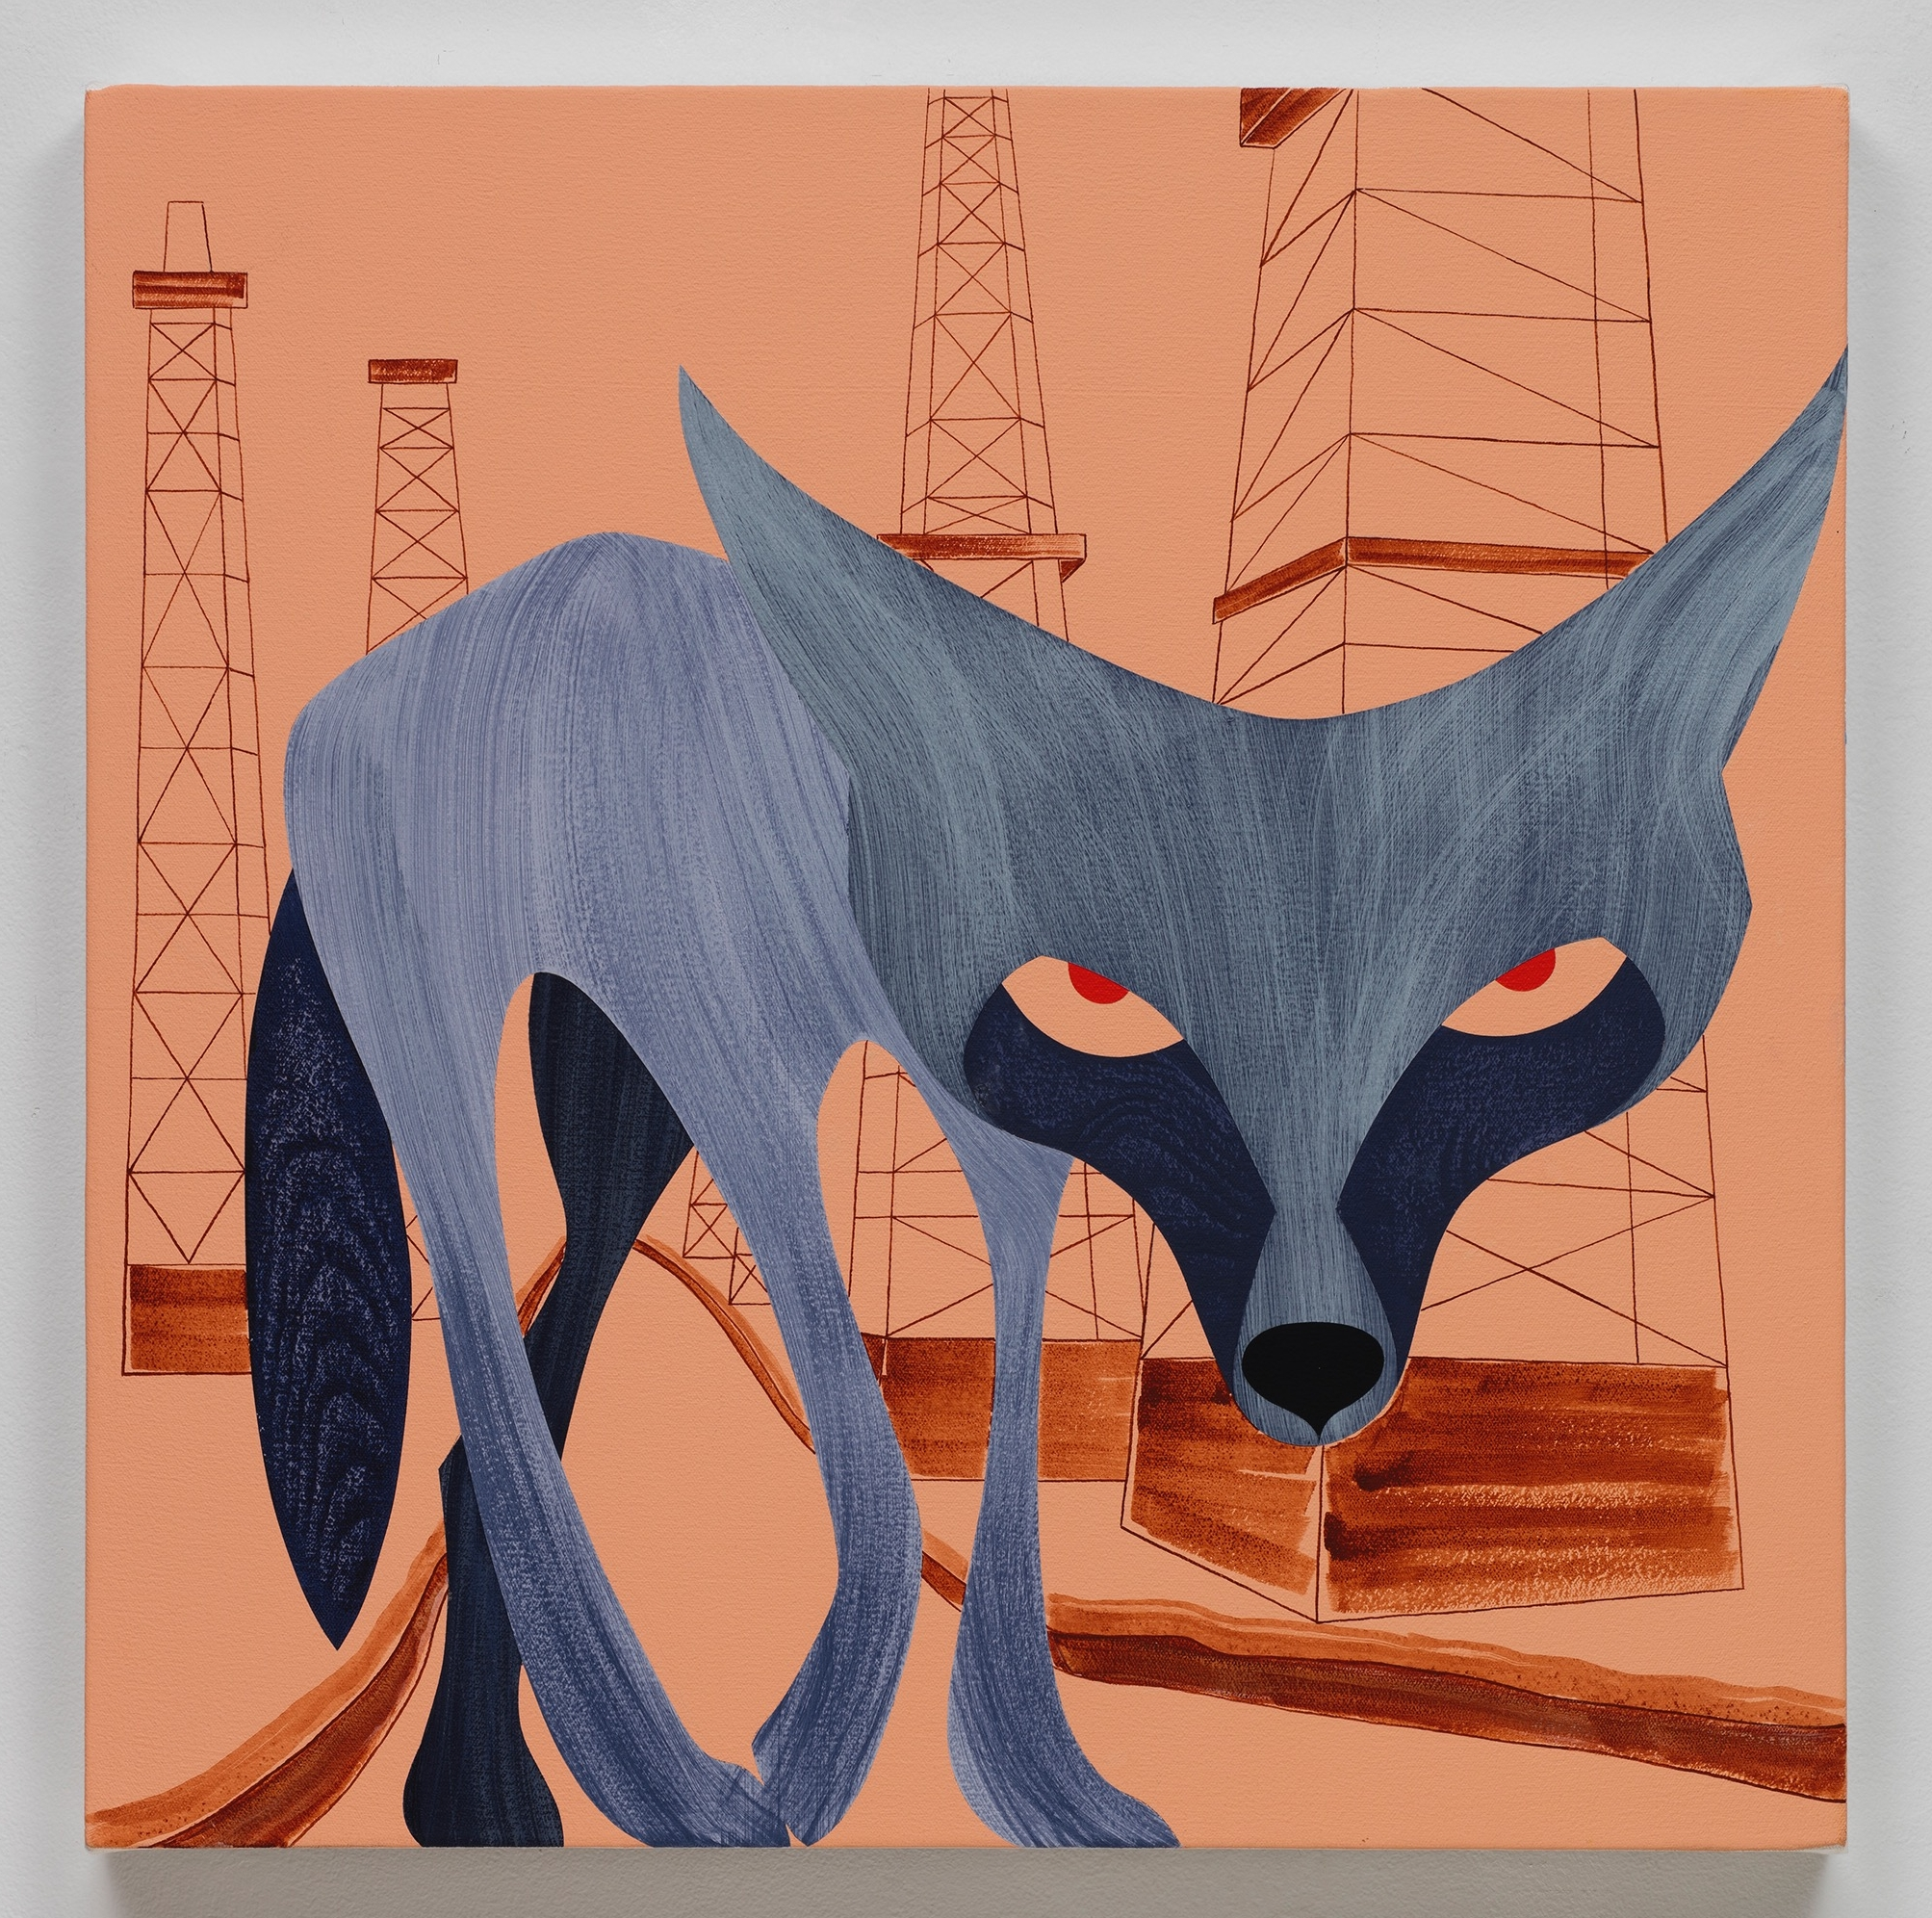 Coyote, Baldwin Hills , acrylic on canvas, 24 x 24 inches, 2017